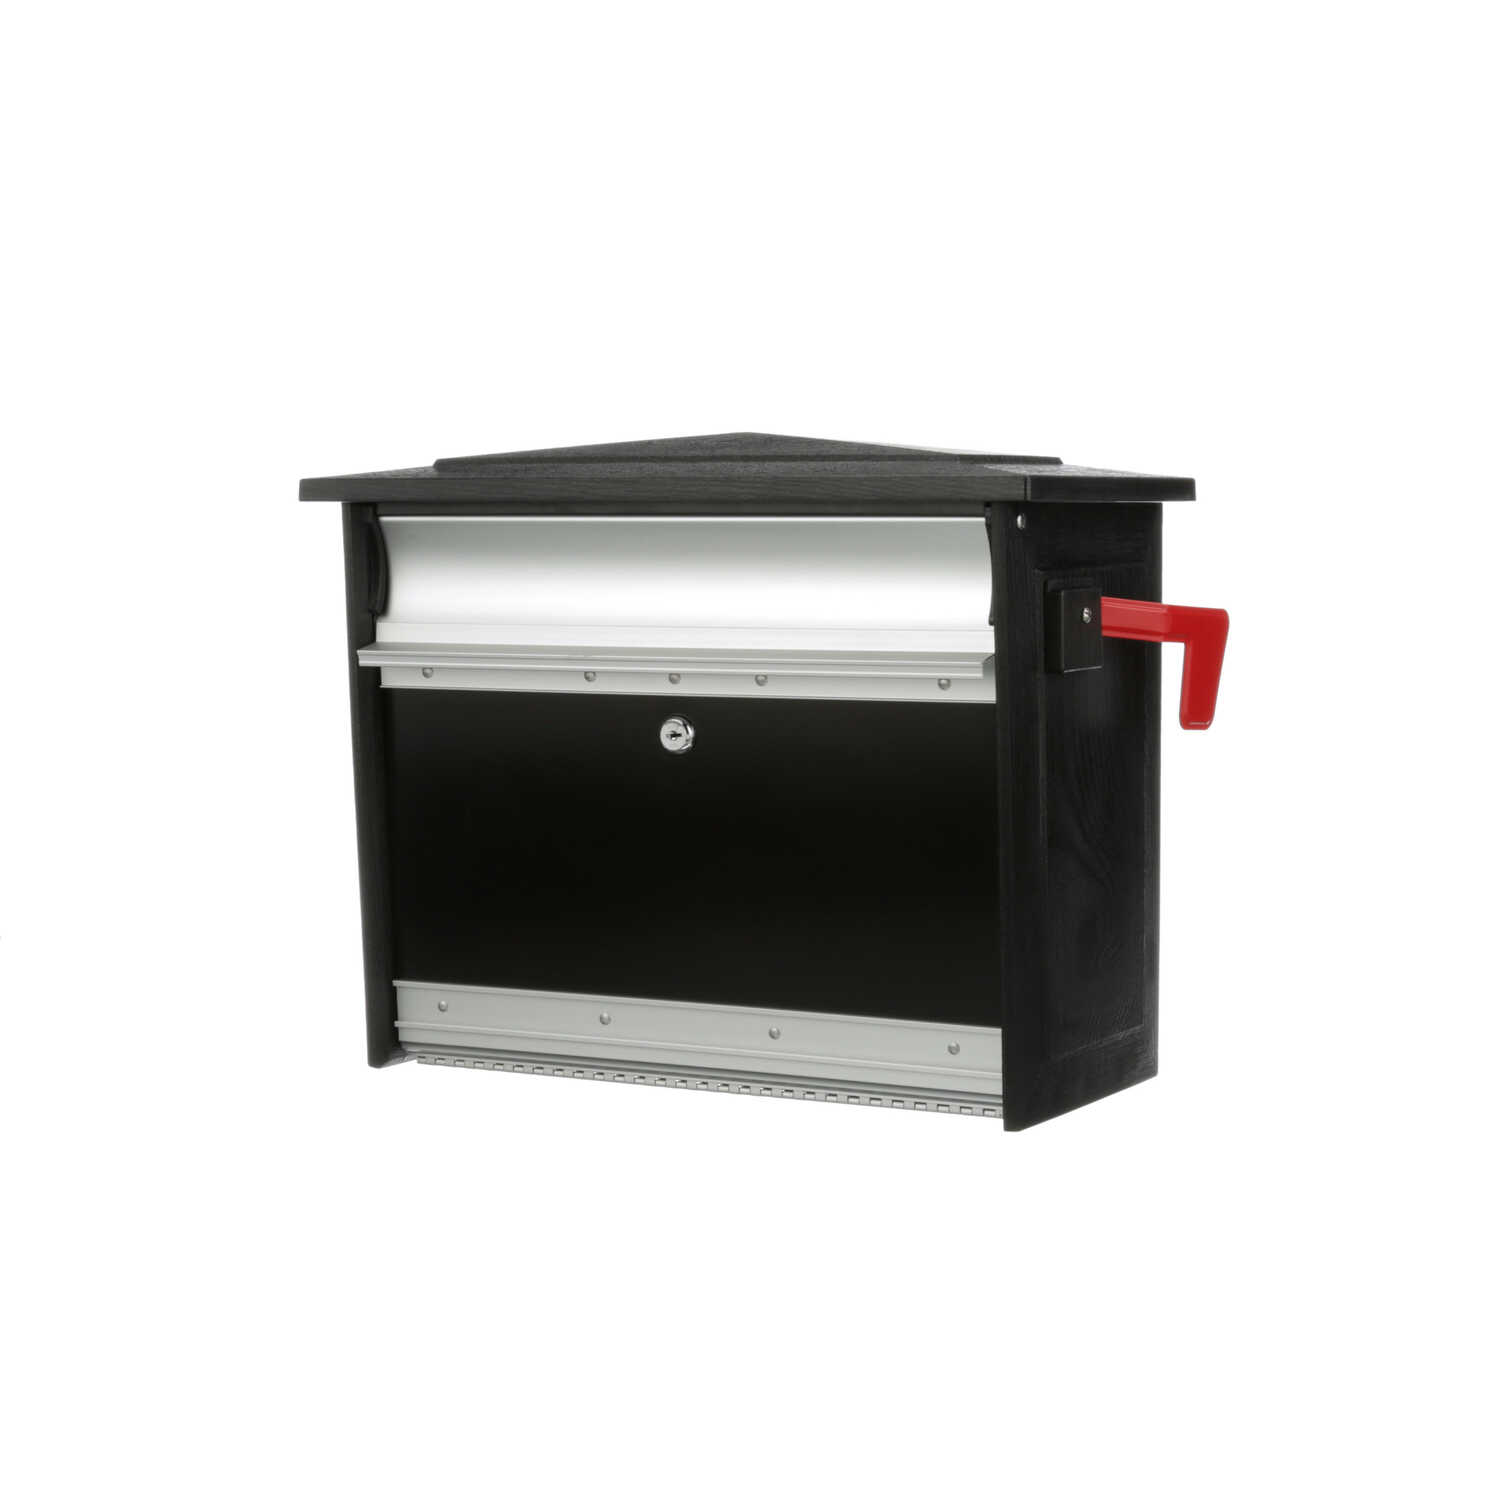 Gibraltar Mailboxes  Mailsafe  Steel  Wall-Mounted  13-1/4 in. H x 16-7/8 in. L x 8-1/2 in. W x 16-7